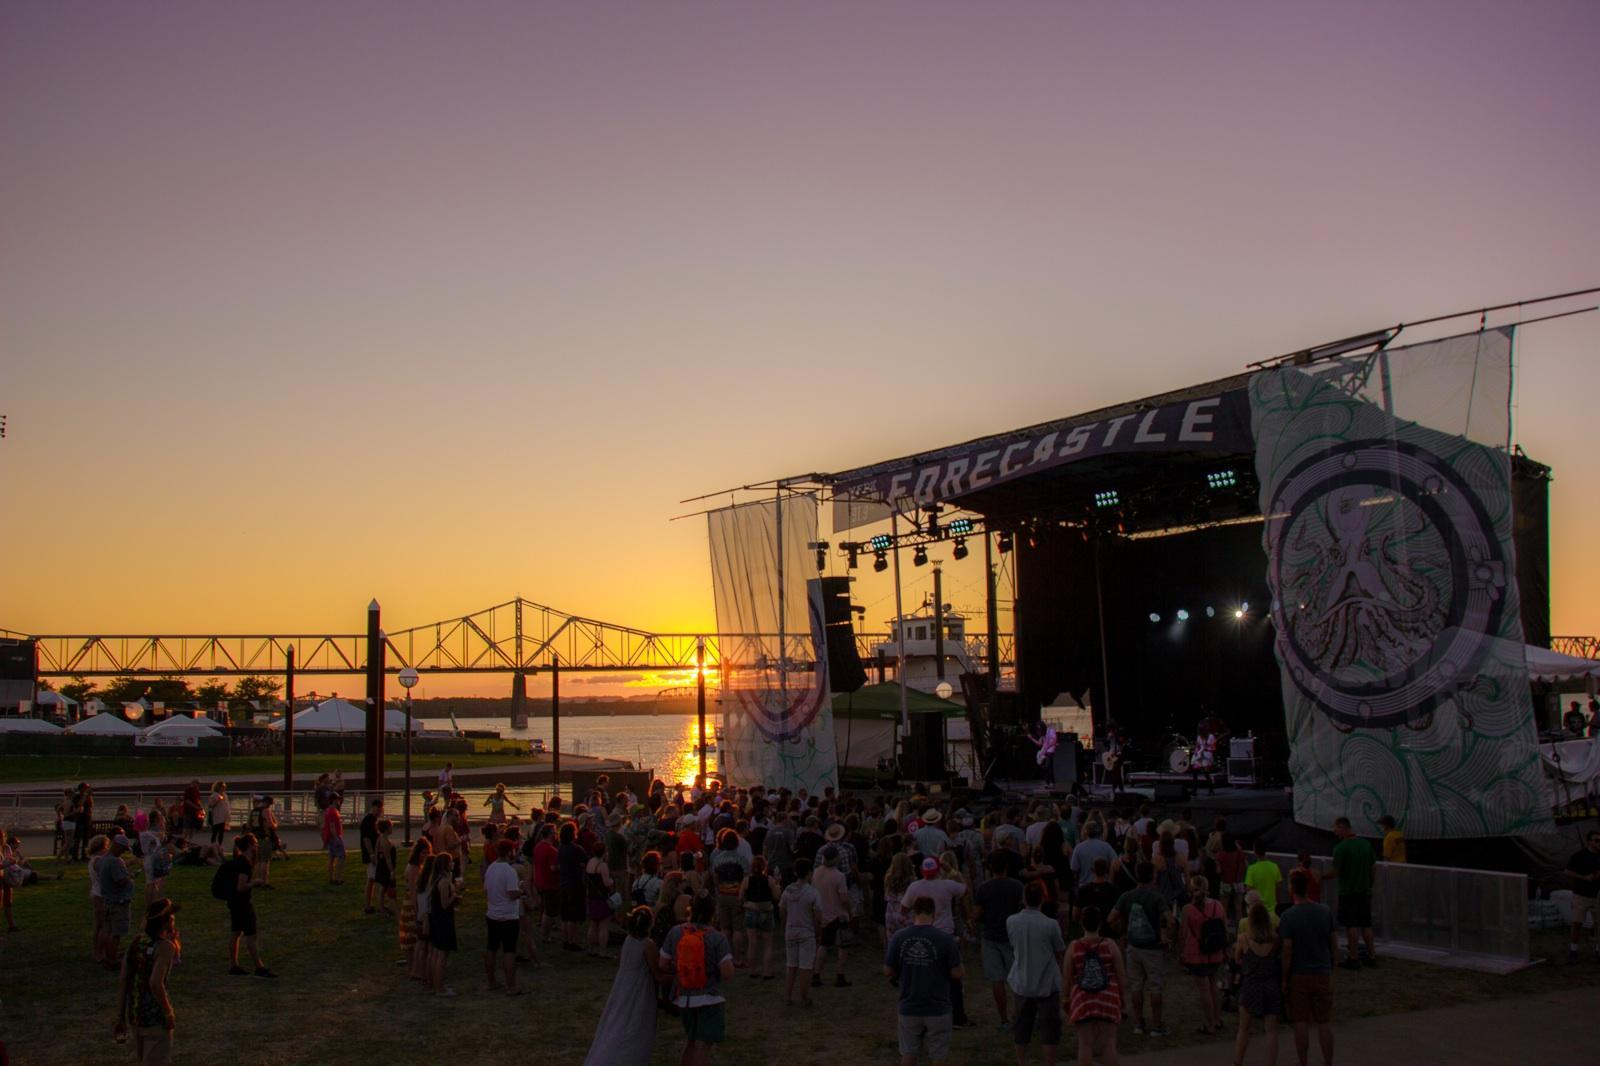 Forecastle Festival 2017: One of the Best Music Festivals in Louisville, Kentucky